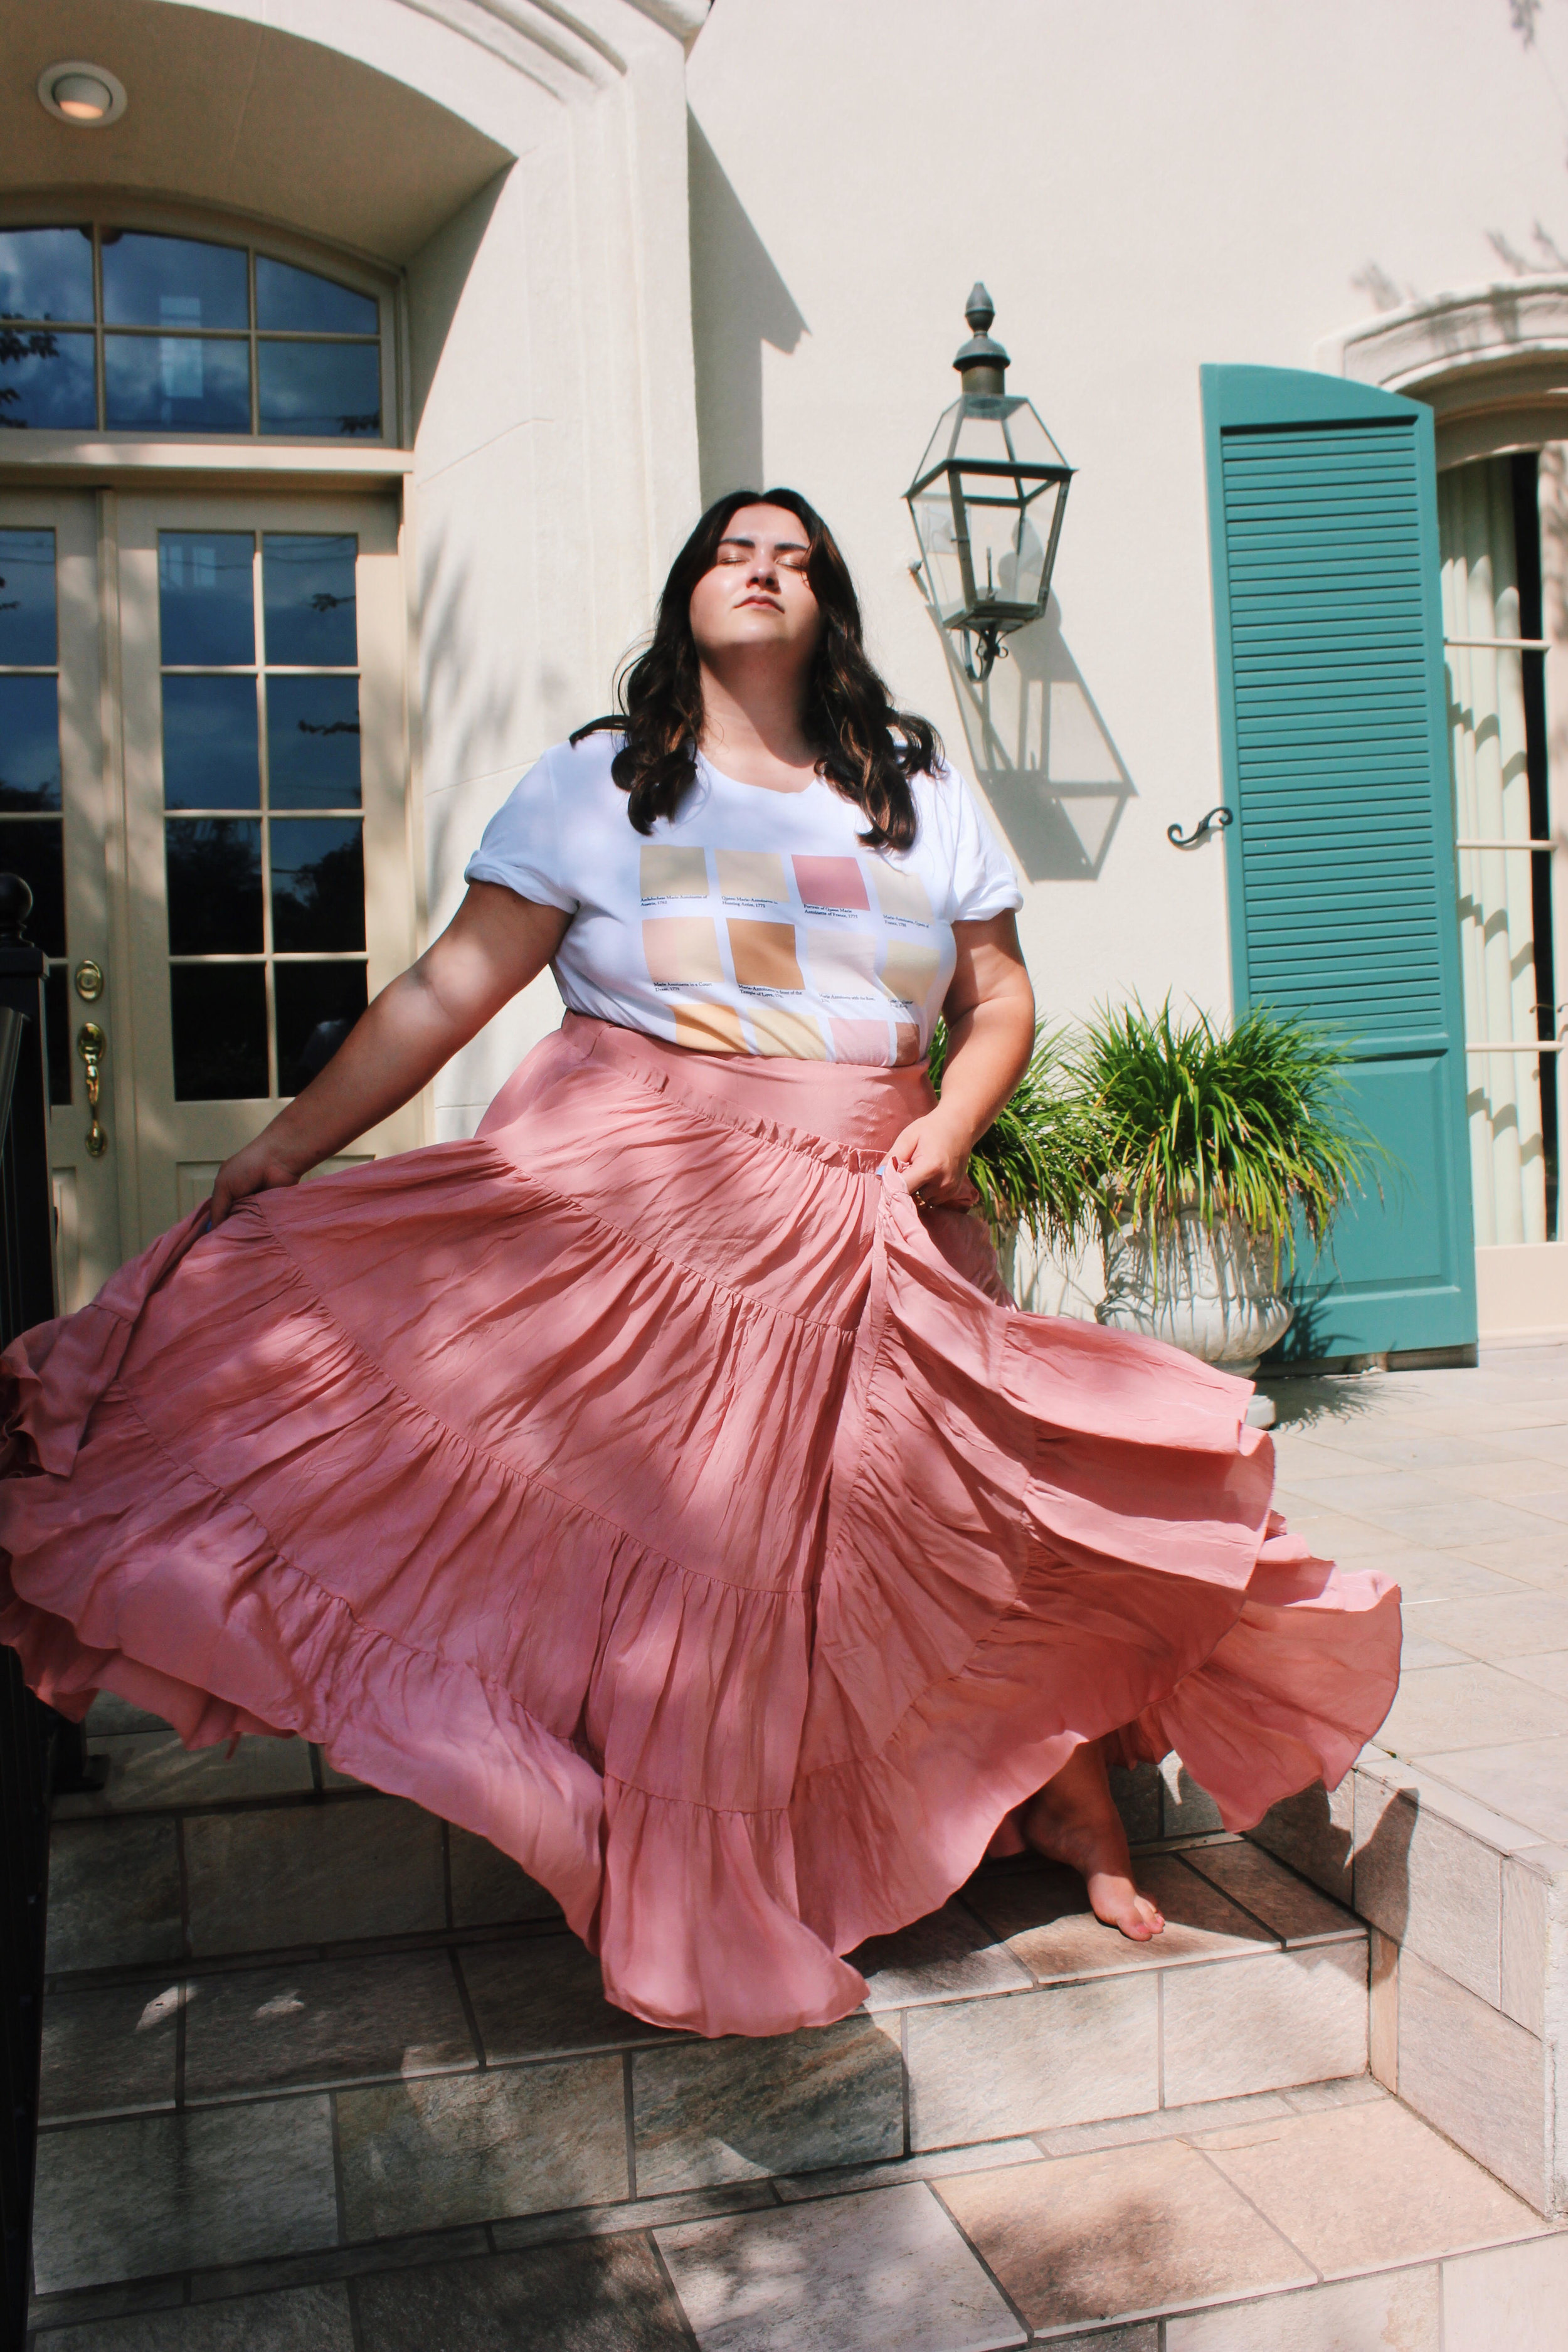 Photo courtesy of Sydney. Wearing an Edith Young for Rachel Antonoff shirt and a 3.1 Phillip Lim skirt.